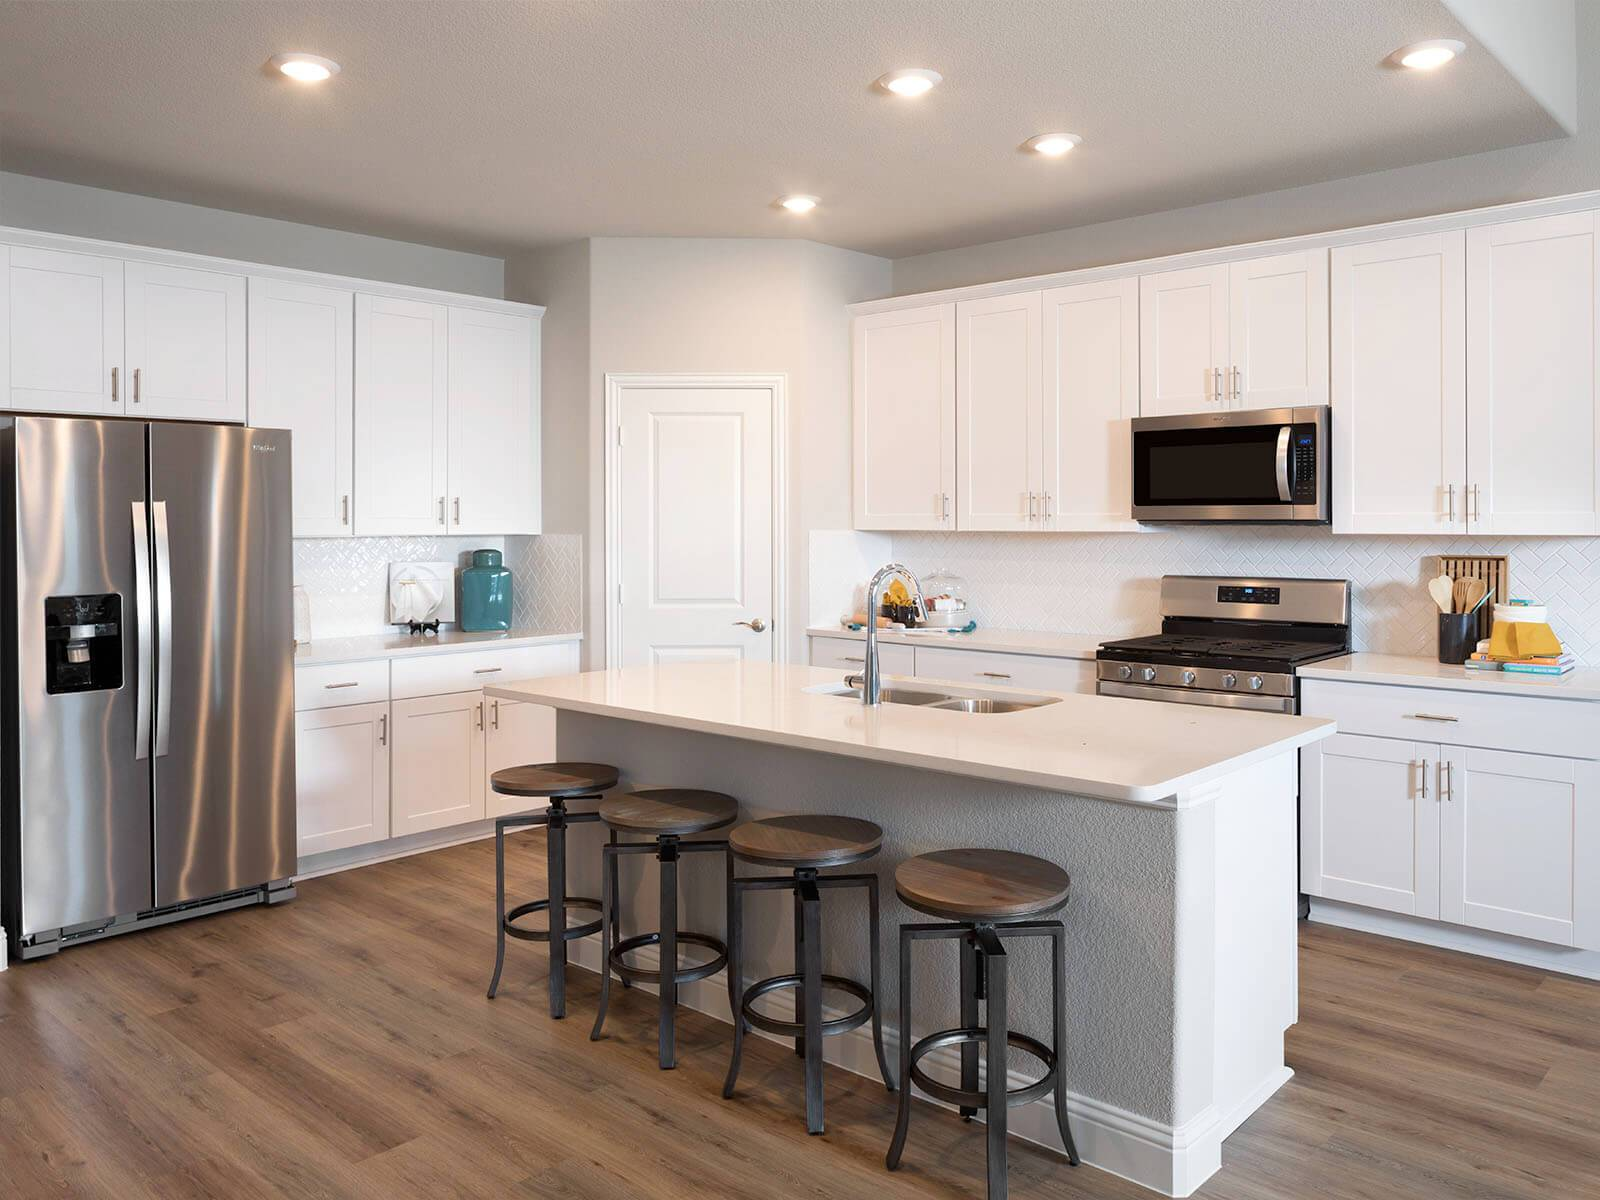 Kitchen featured in The Kessler By Meritage Homes in Dallas, TX